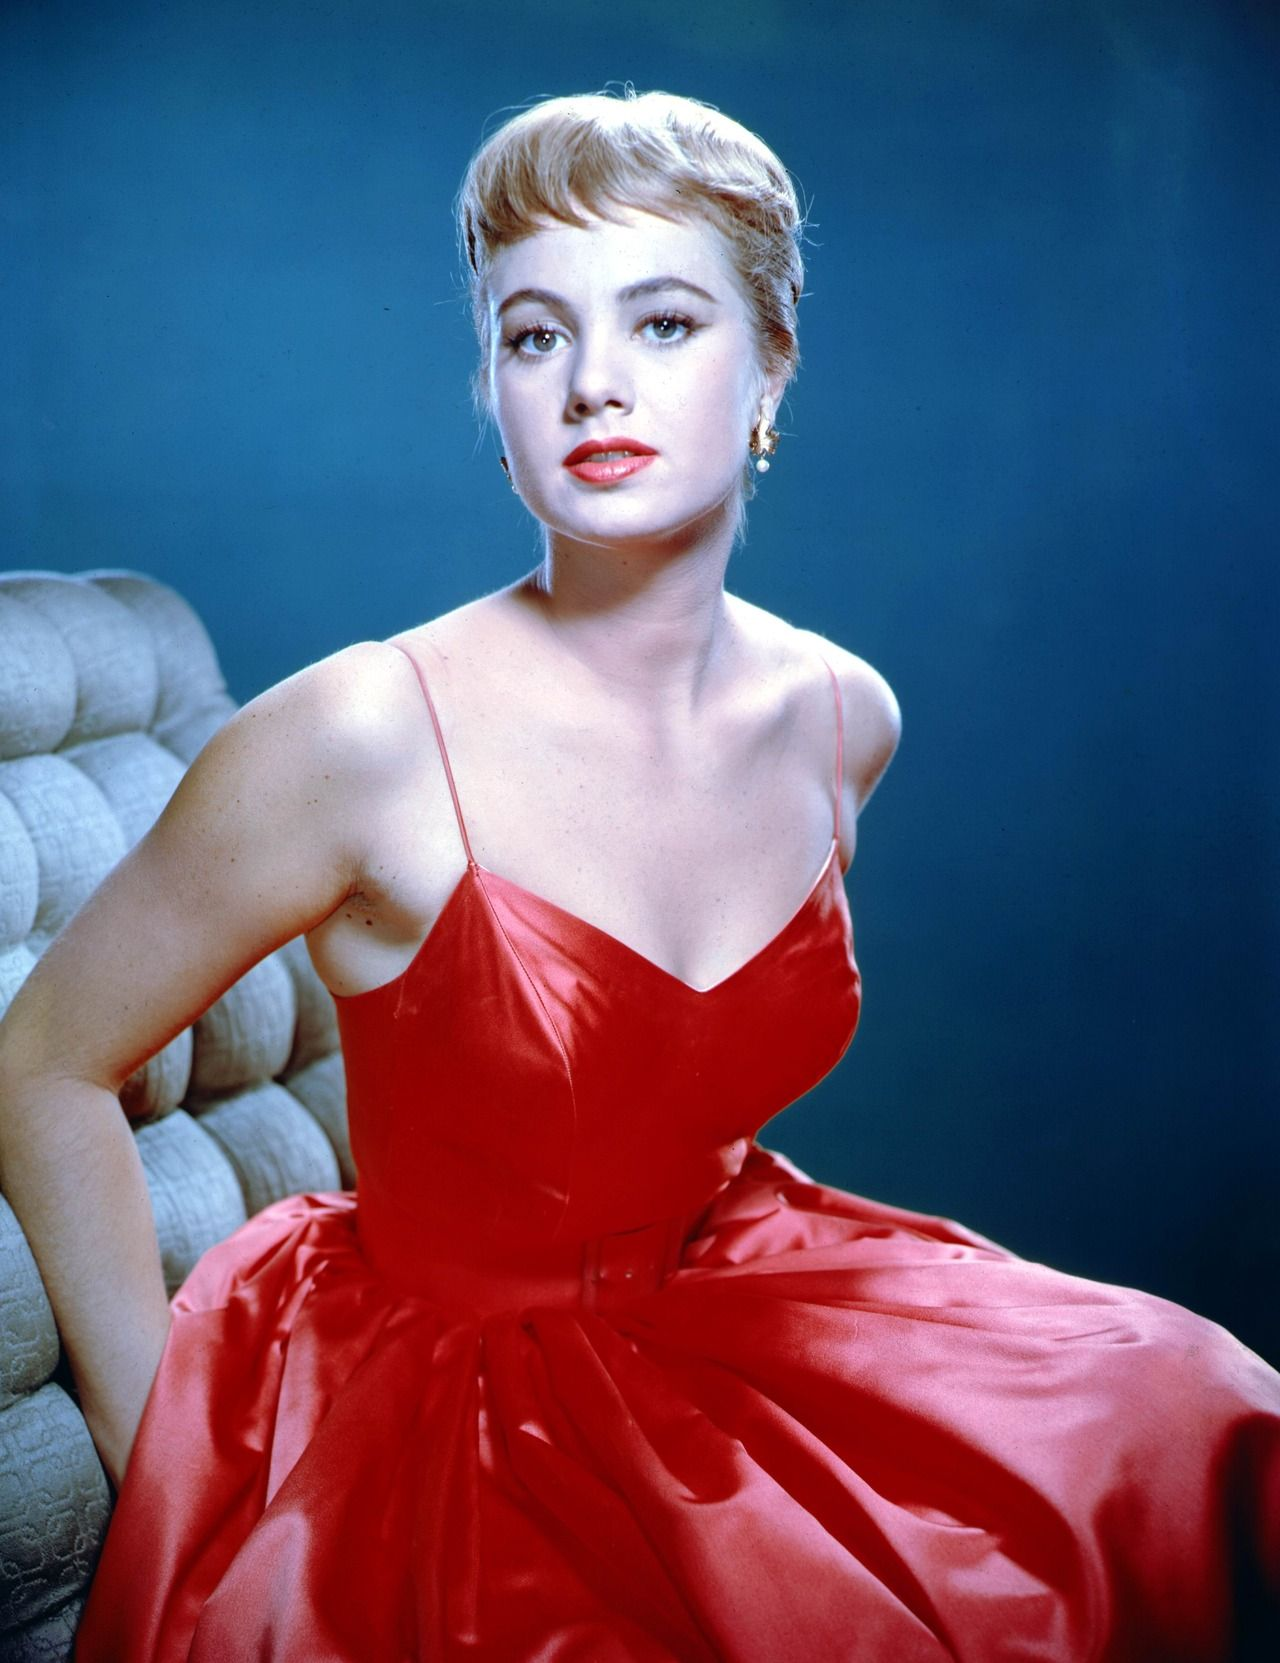 shirley jones moviesshirley jones breaking up, shirley jones hillary clinton, shirley jones, shirley jones oklahoma, shirley jones music man, shirley jones david cassidy, shirley jones twitter, shirley jones till there was you, shirley jones net worth, shirley jones imdb, shirley jones autobiography, shirley jones facebook, shirley jones feet, shirley jones movies, shirley jones hot, shirley jones book